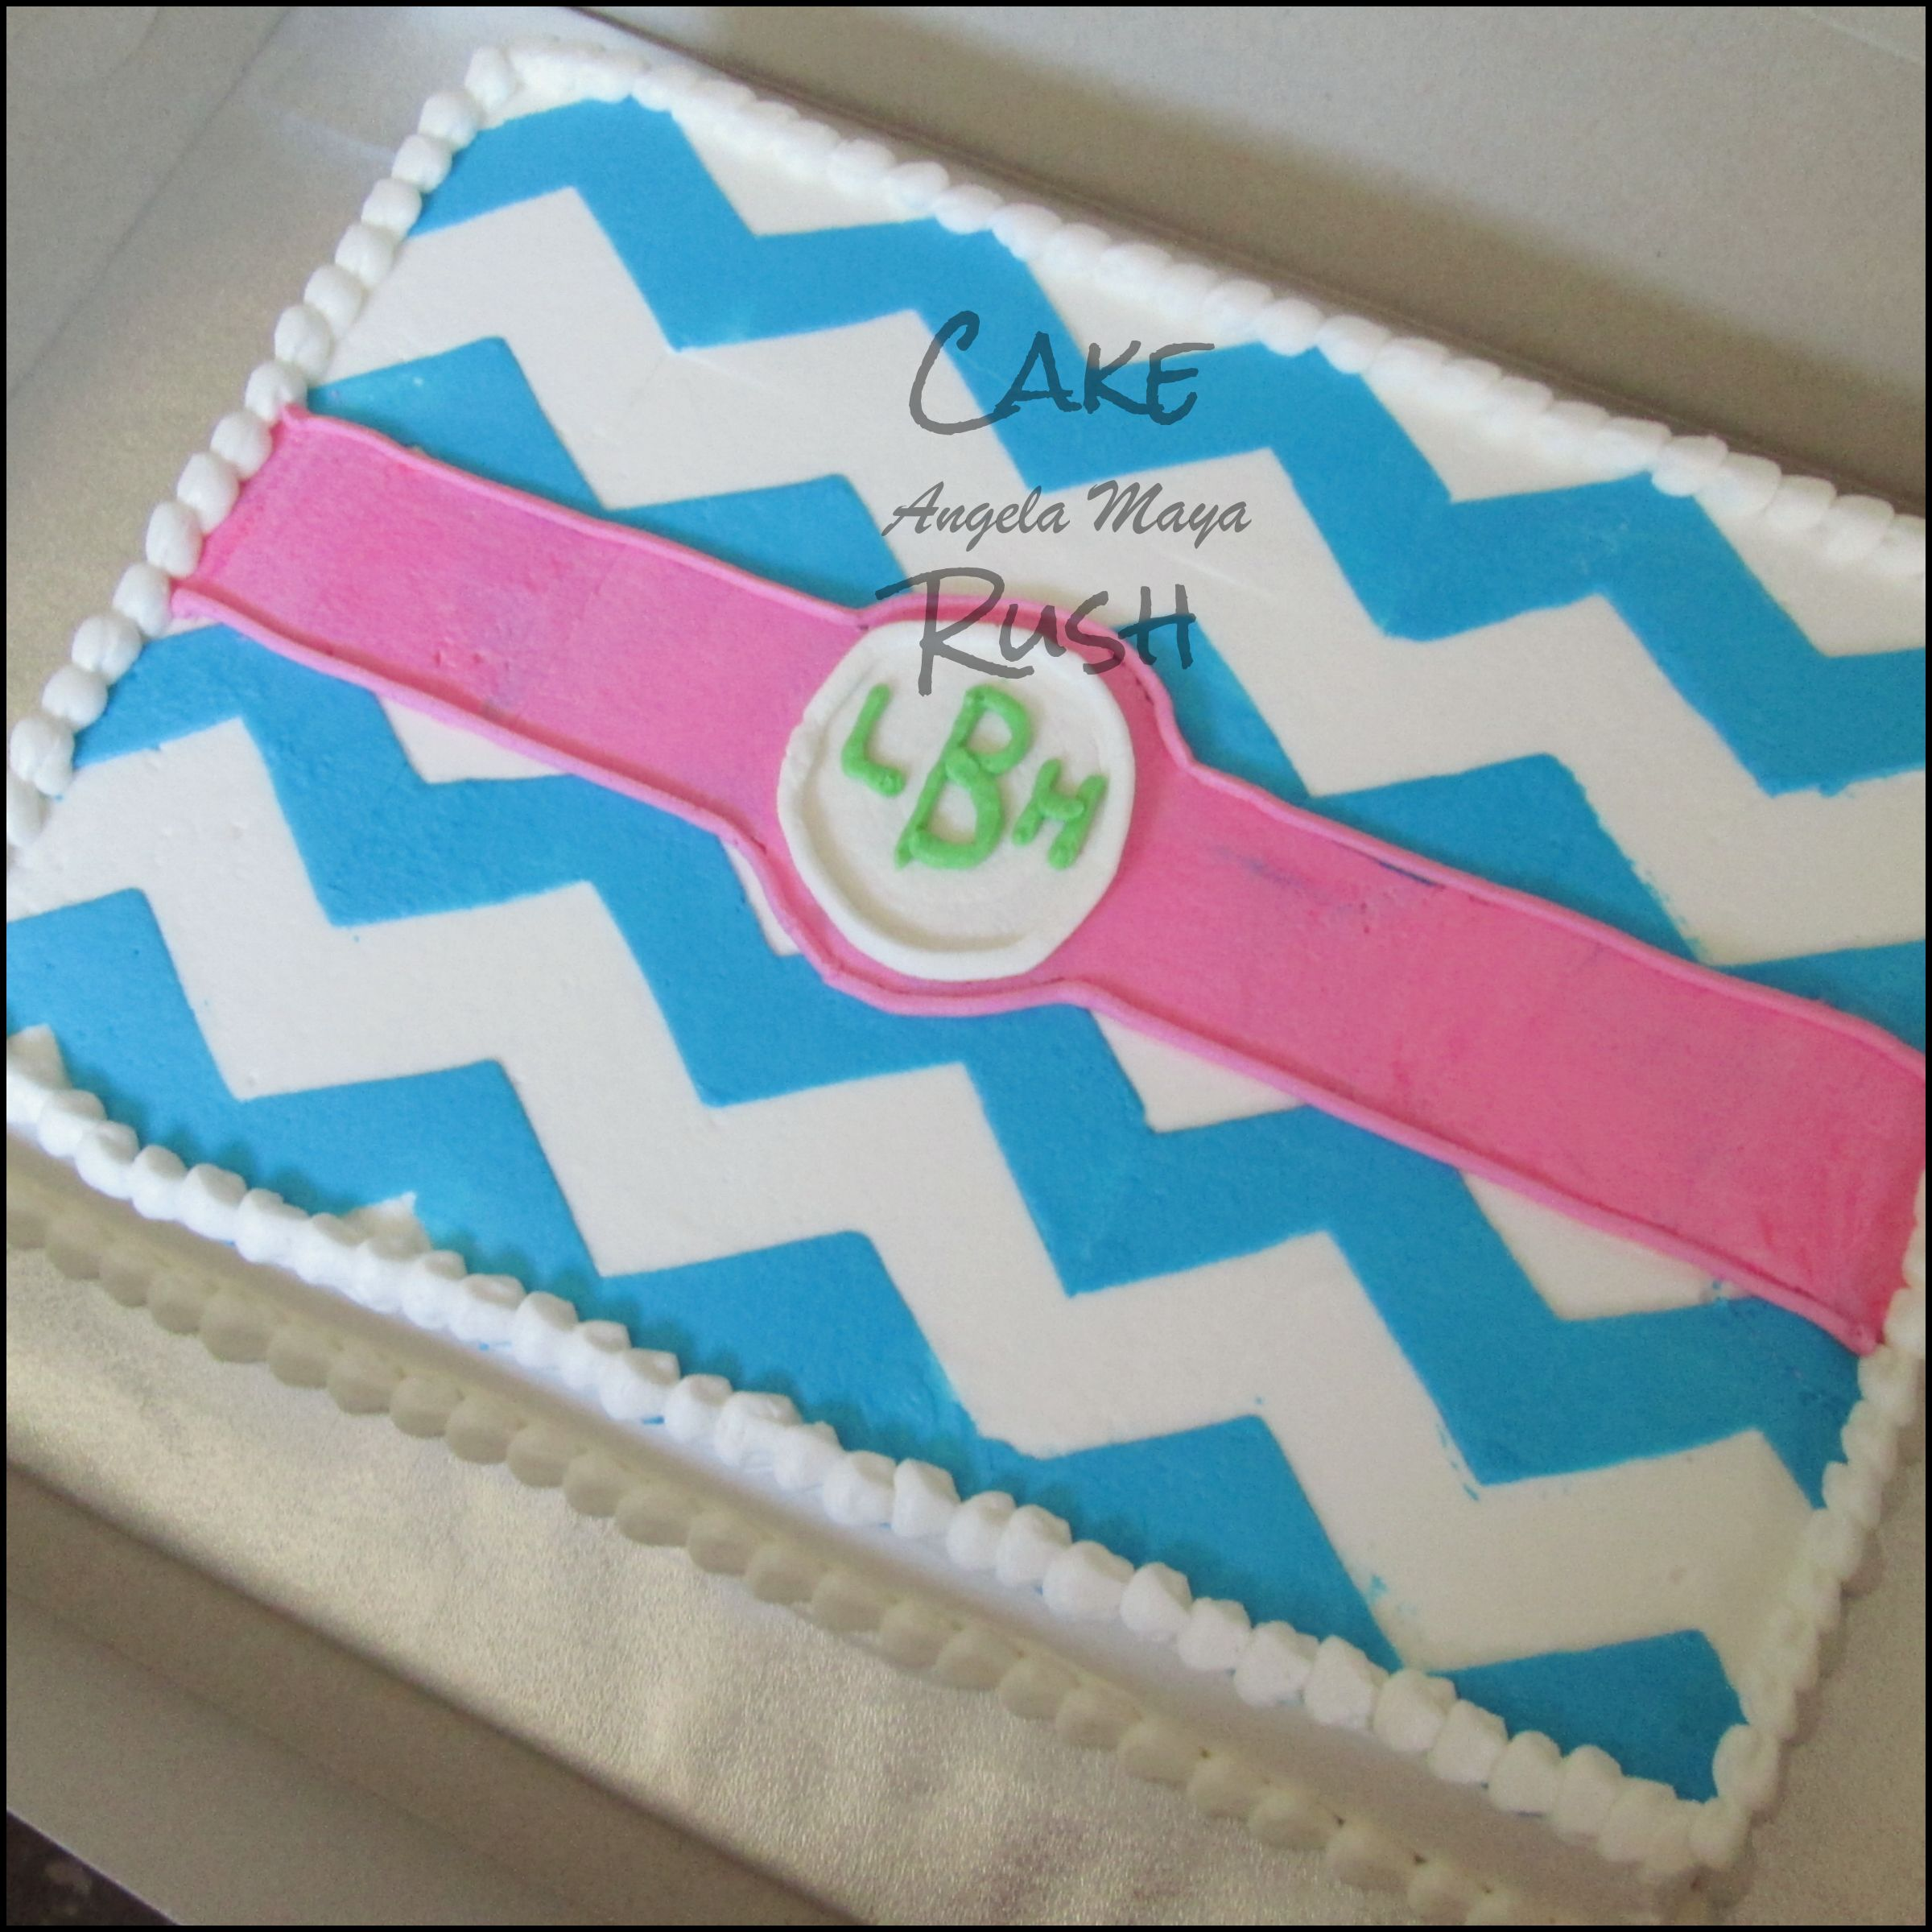 All butter cream sheet cake with bright blue chevron design and